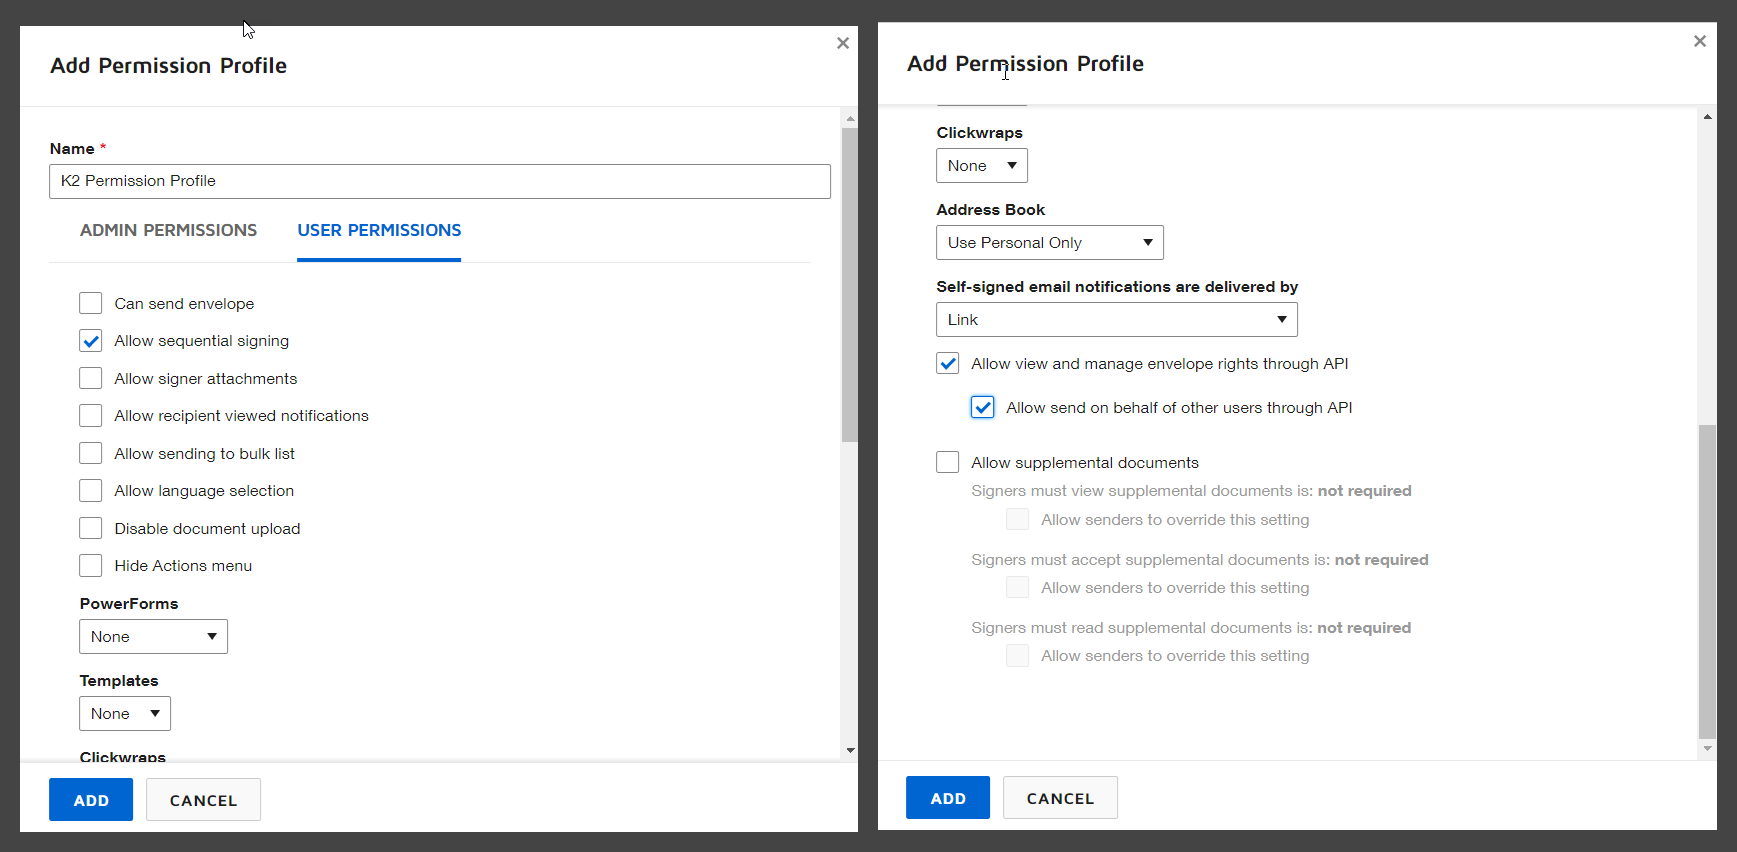 Add Permission Profile – Permissions Required for K2 Integration